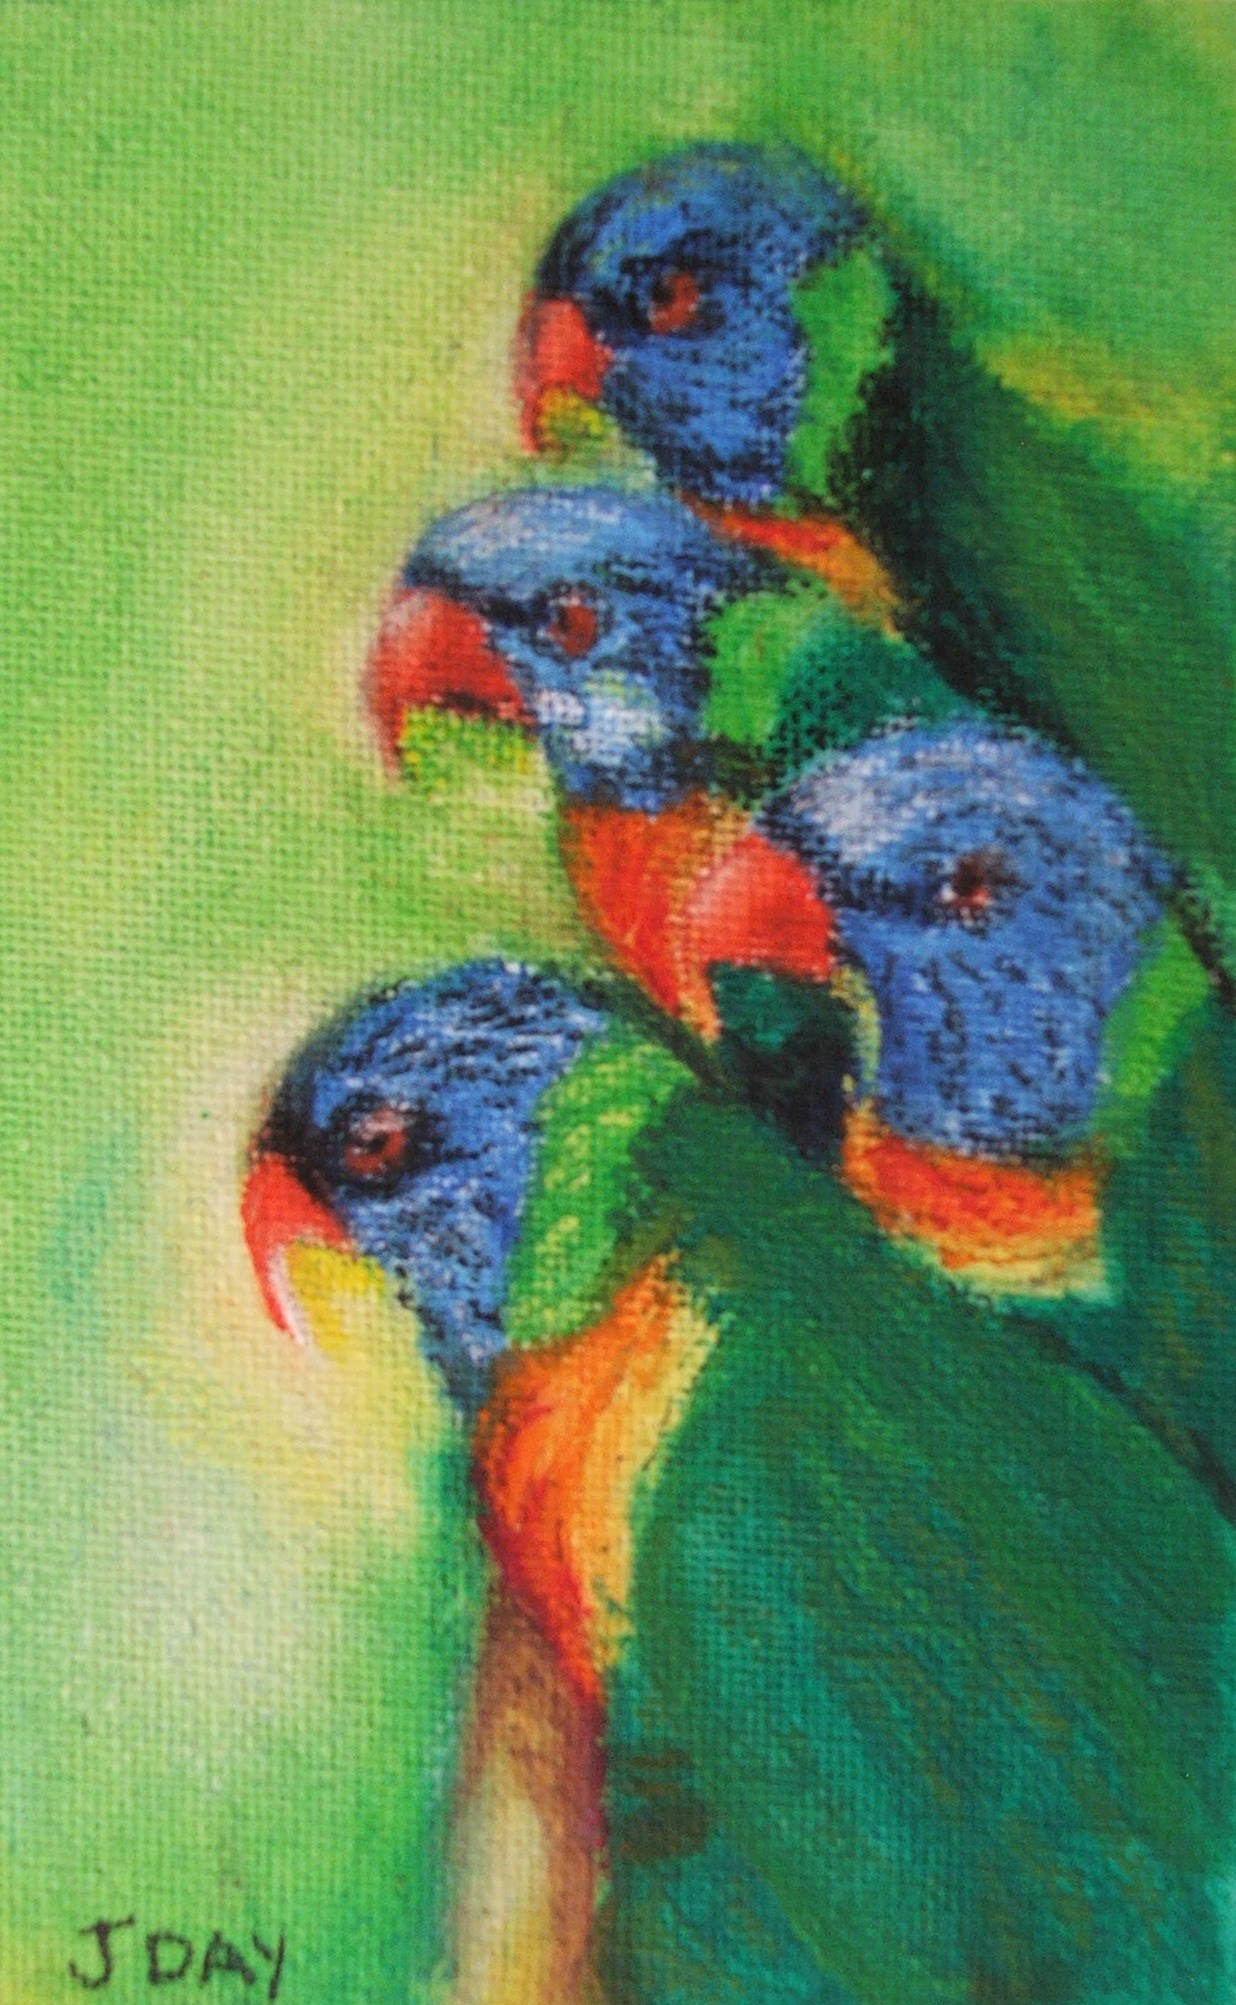 Rainbow Lorikeets Painted in Oil Pastels -SOLD